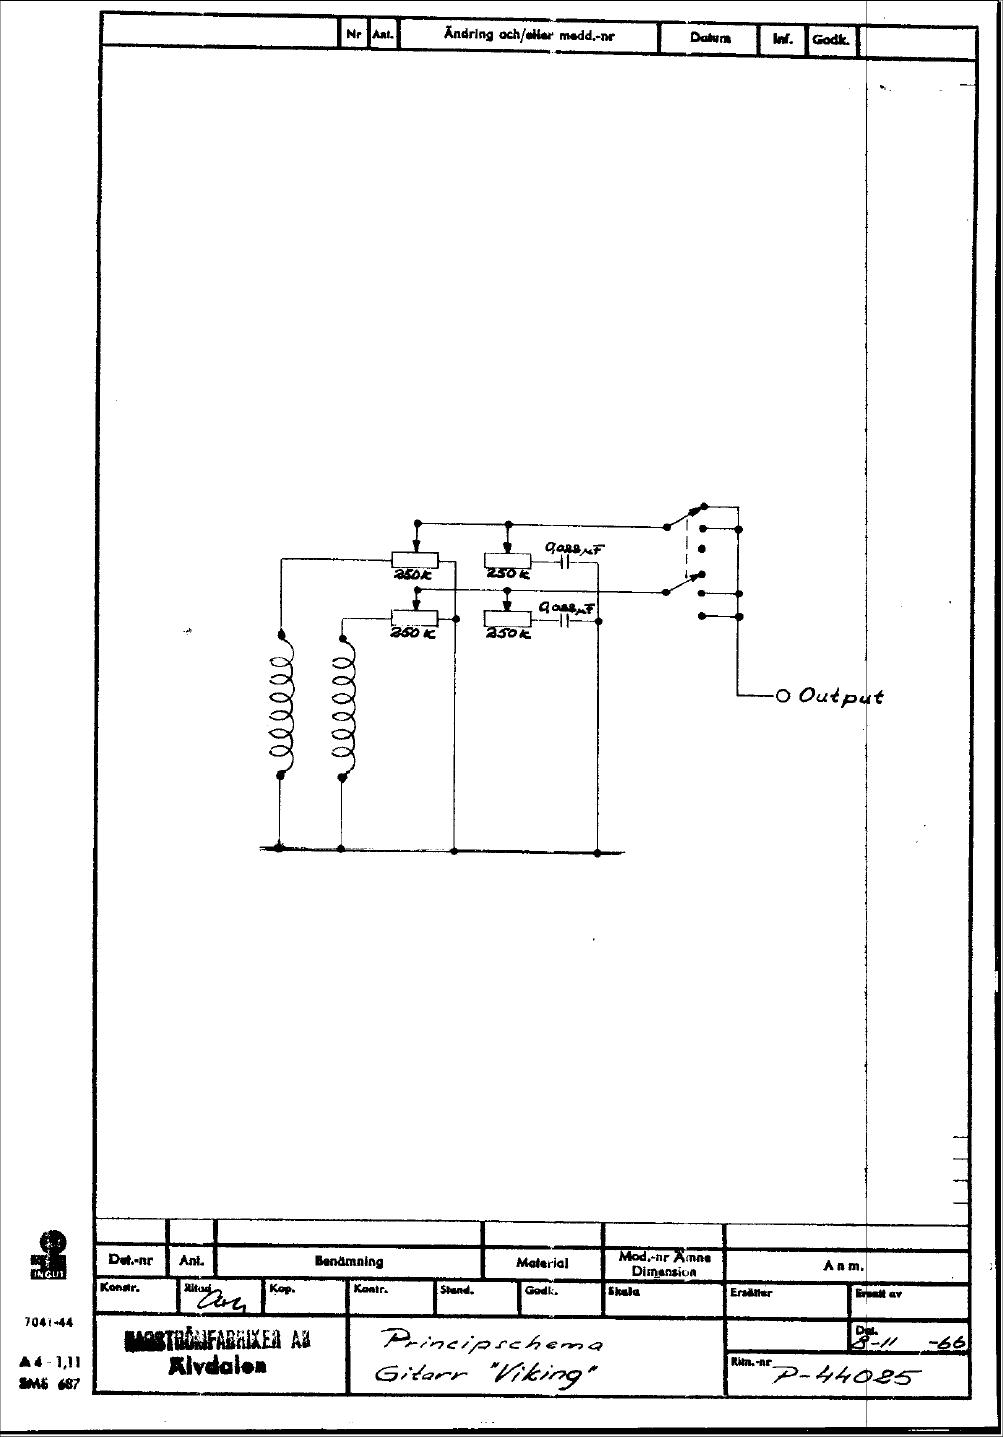 hagström schematics 1966 impala wiring diagram wiring diagram for a hagstrom viking #1